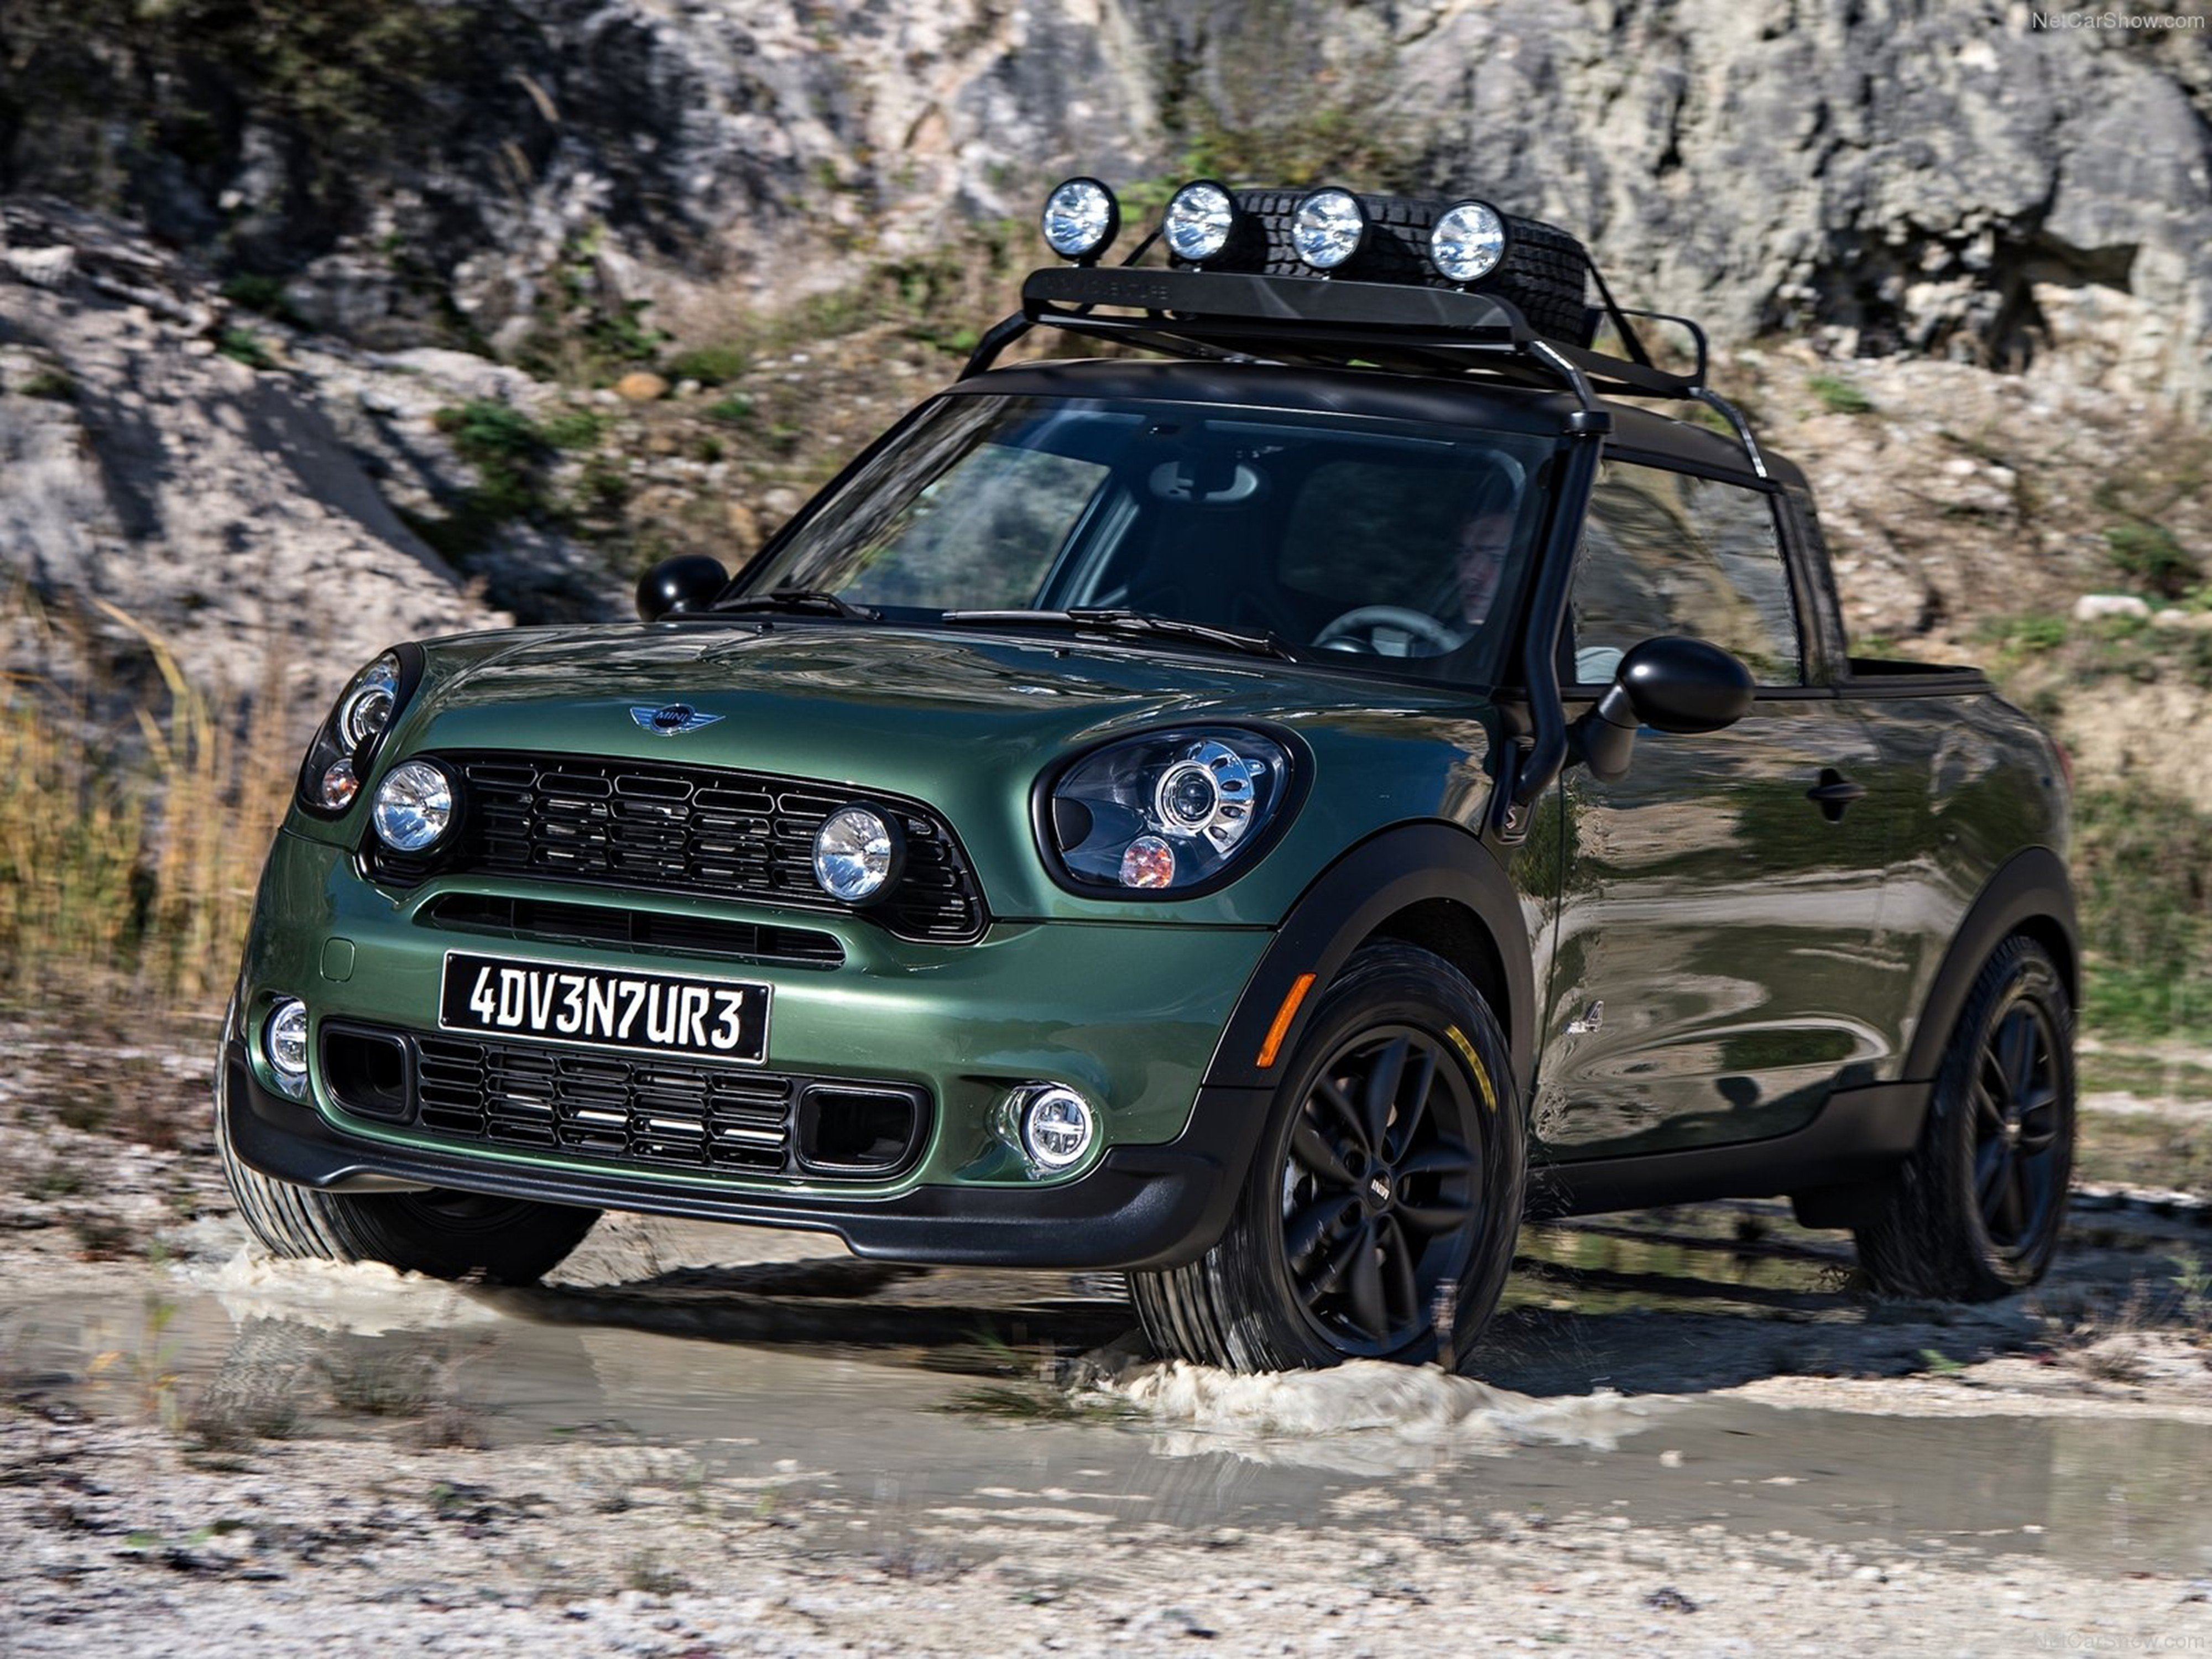 mini paceman adventure concept 2014 car 4x4 off road 4000x3000 wallpaper 4000x3000 355453. Black Bedroom Furniture Sets. Home Design Ideas